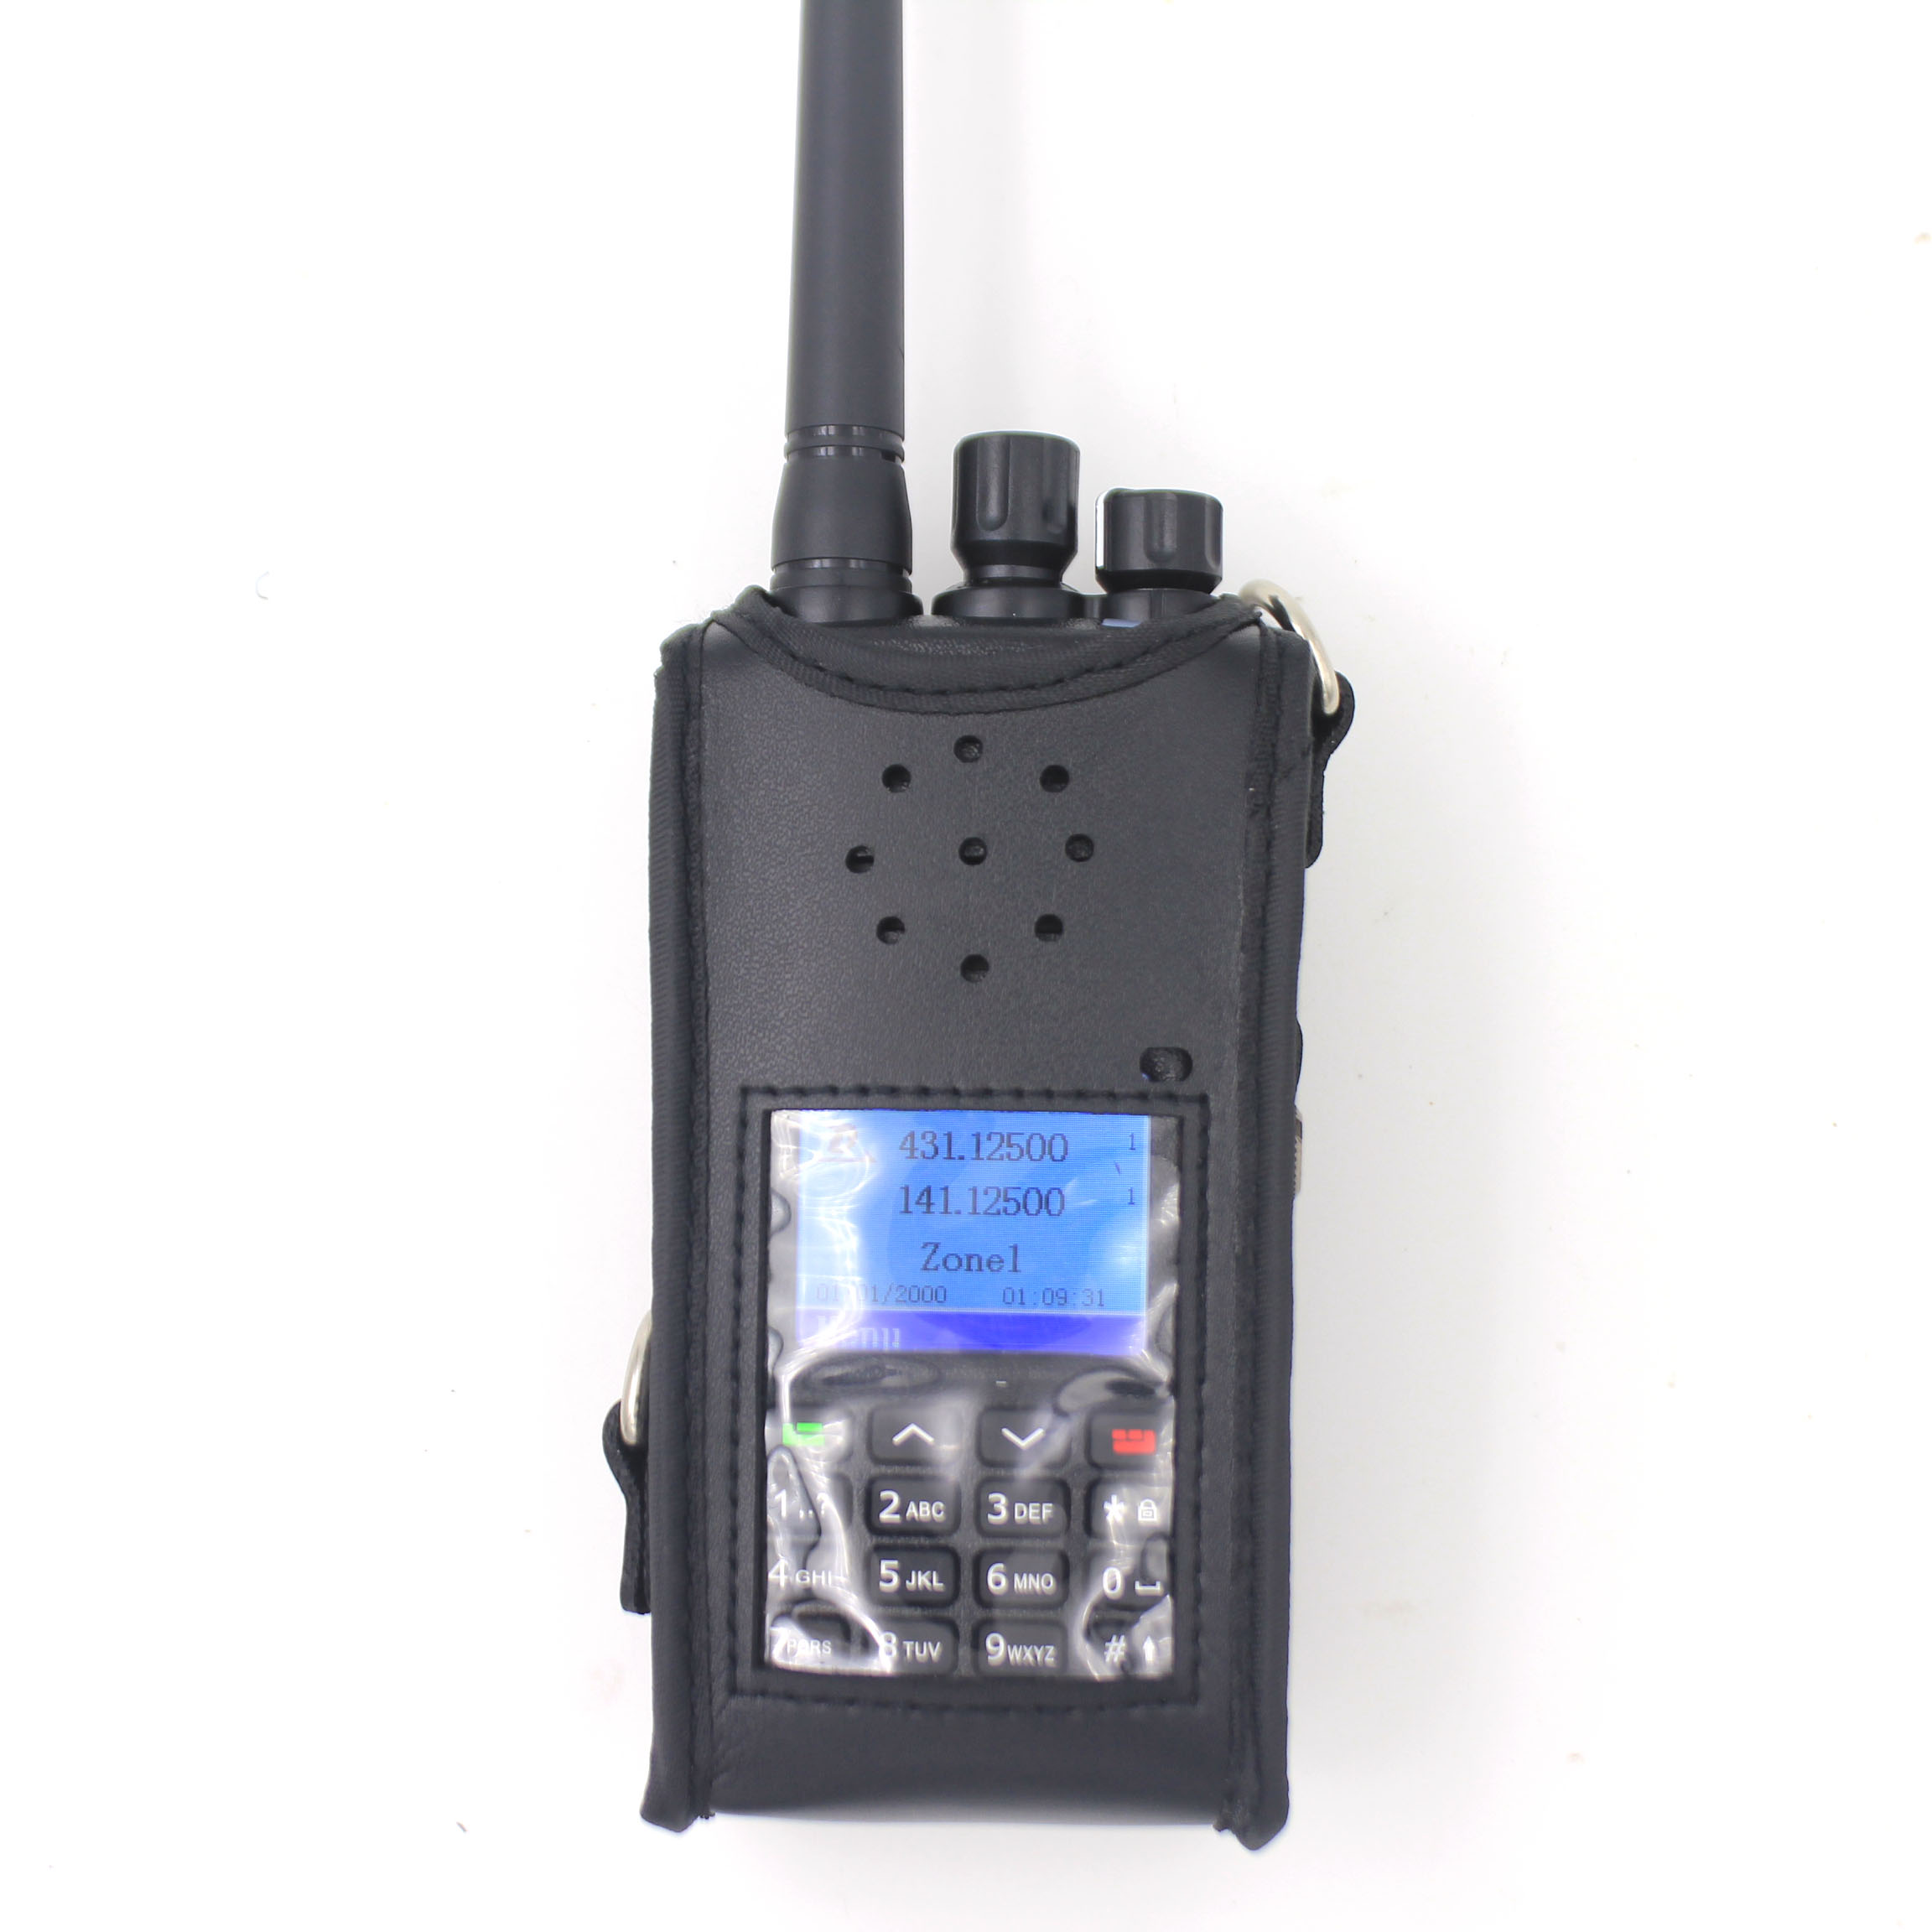 Portable Radio Case For TYT MD-UV380 MD-UV390 Baofeng UV-9R Plus BF-A58 BF-9700 GT-3WP PVC Protect Bag For UV-5S Walkie Talkies